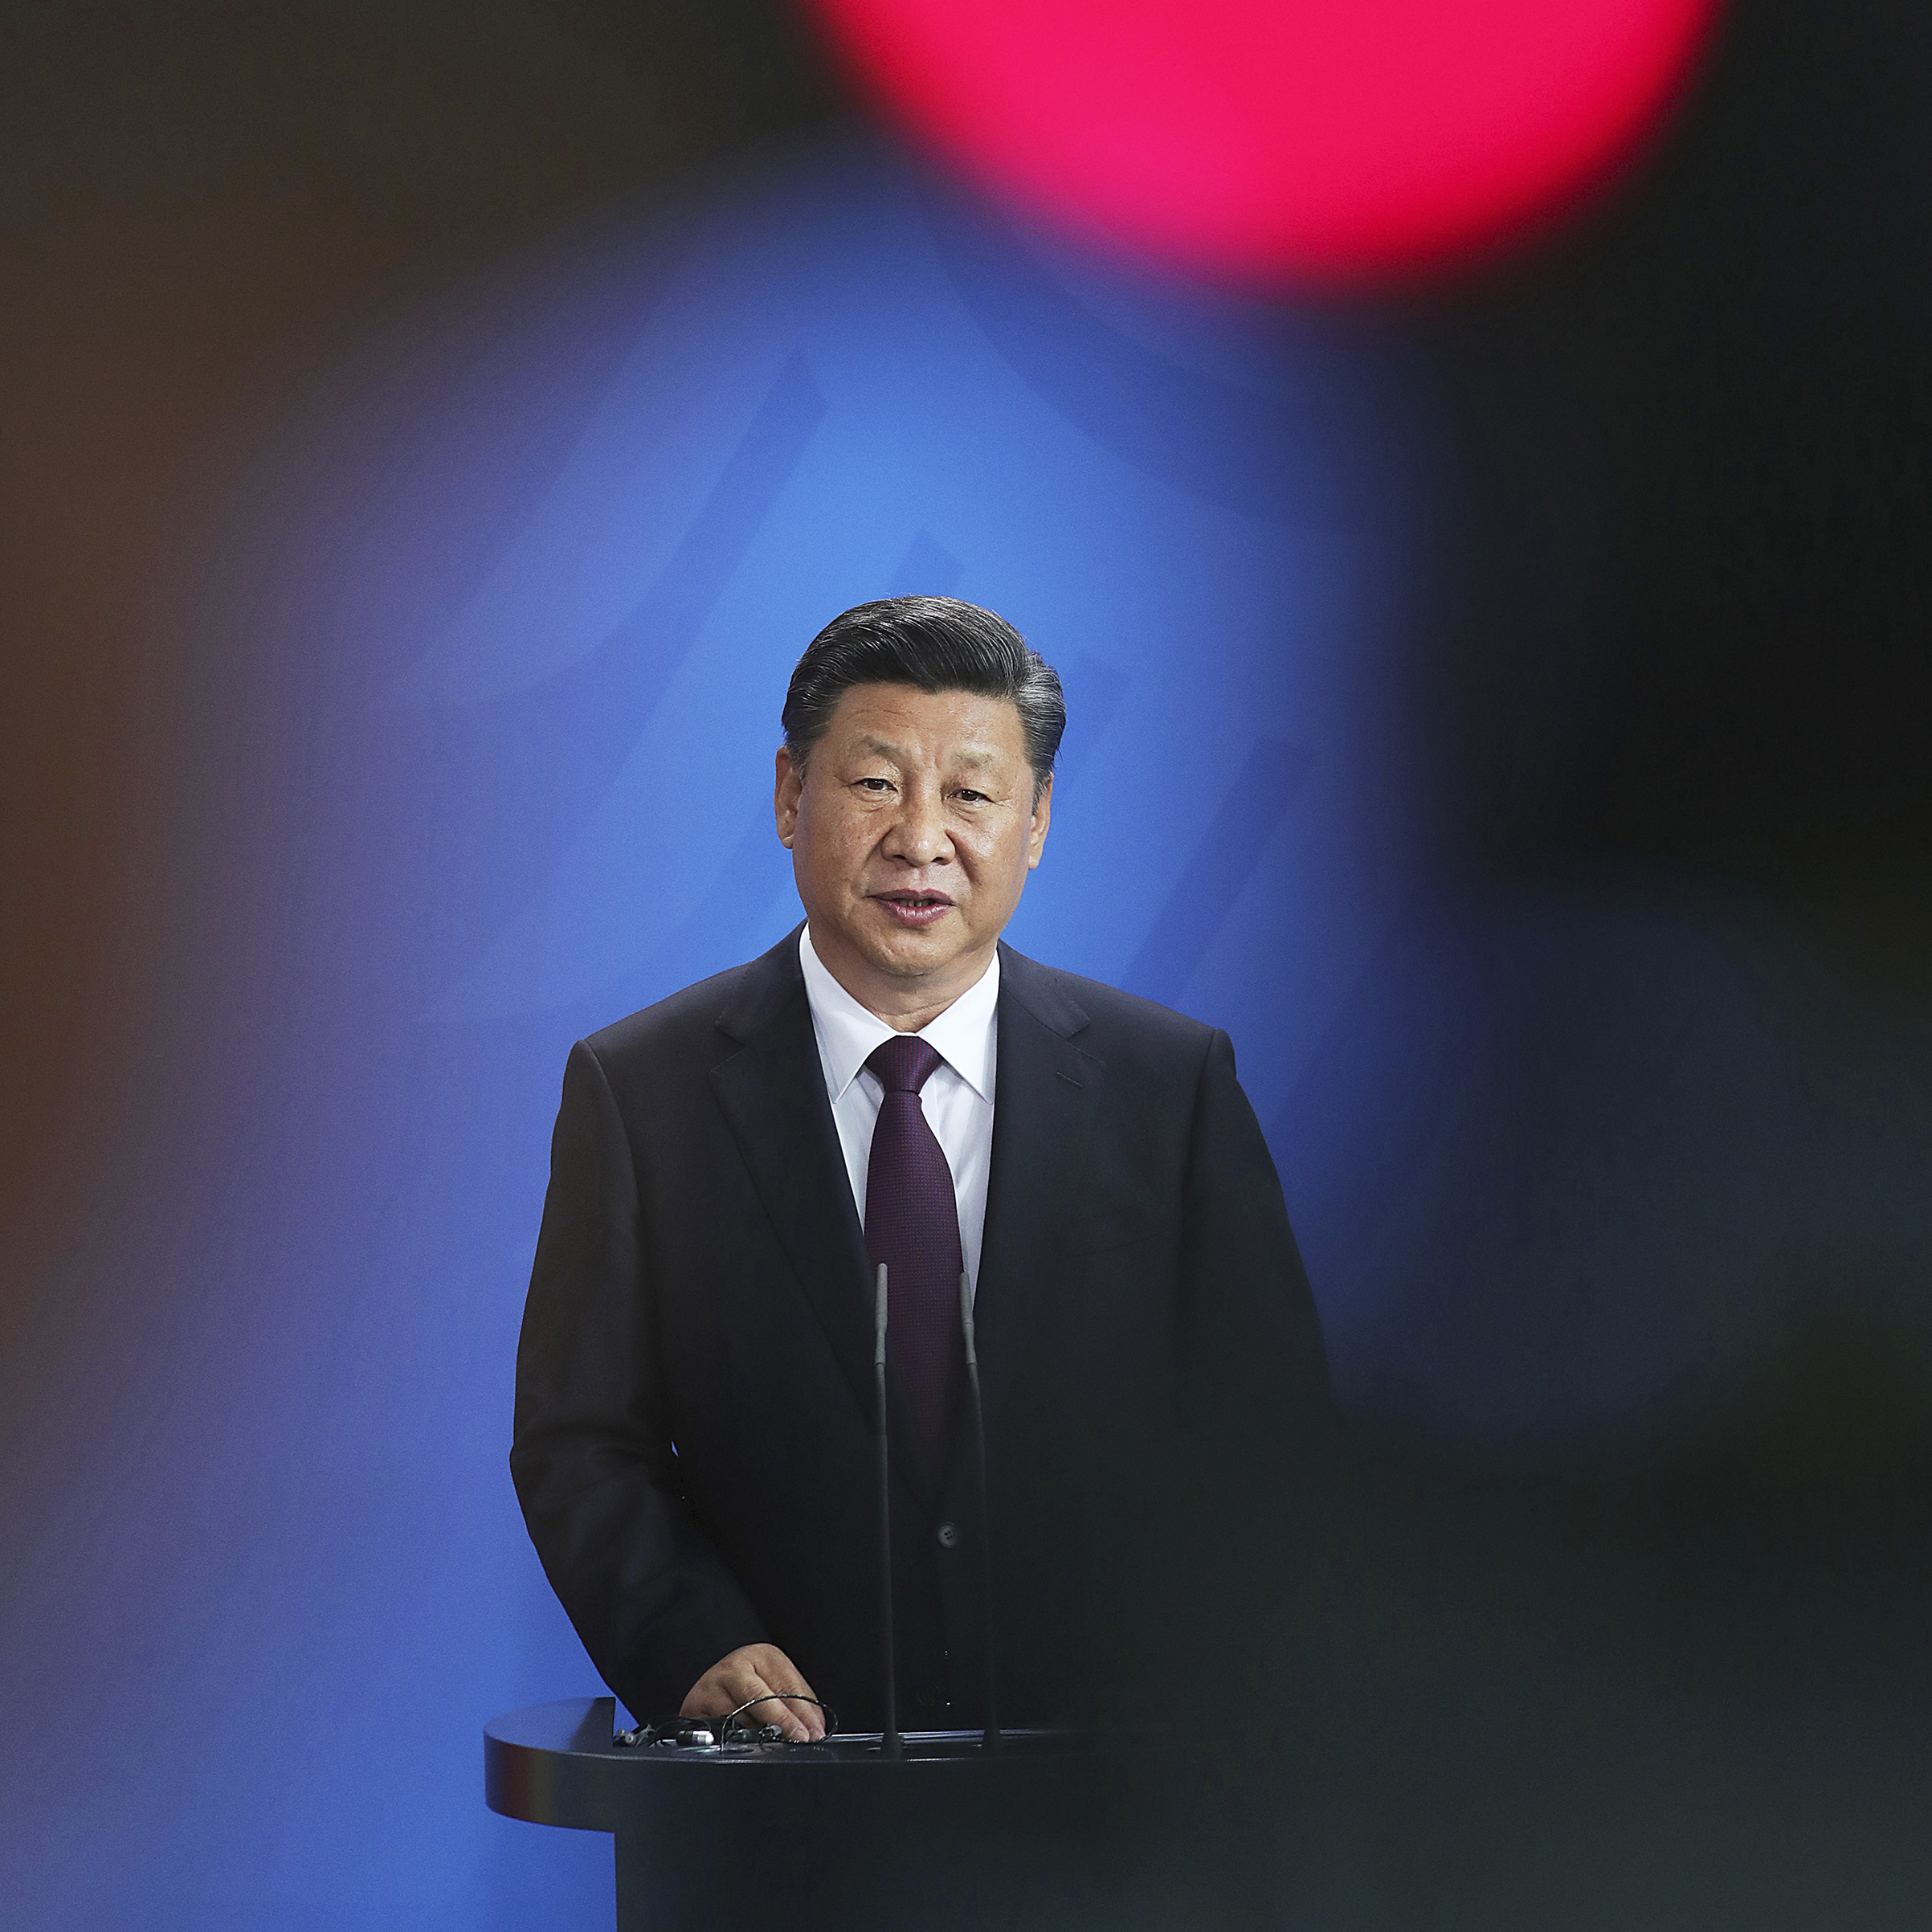 Xi Jinping Time Person Of The Year 2017 Runner Up Time Com